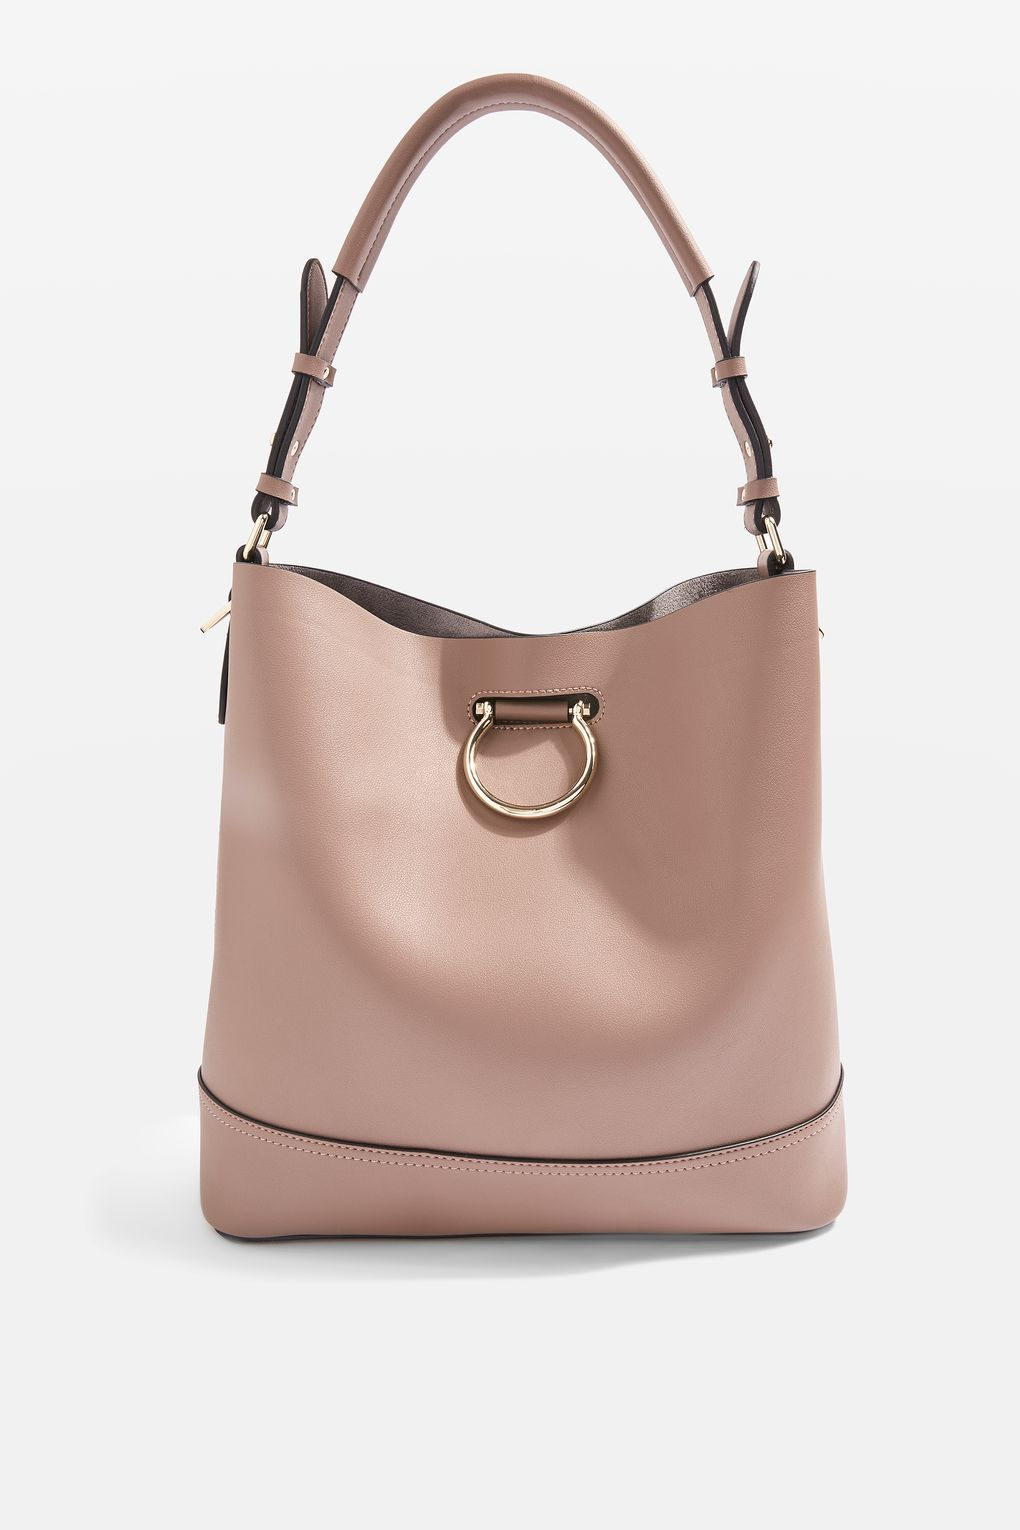 b7aa33672684 Remy Trophy Hobo Bag - New In Fashion - New In - Topshop Europe